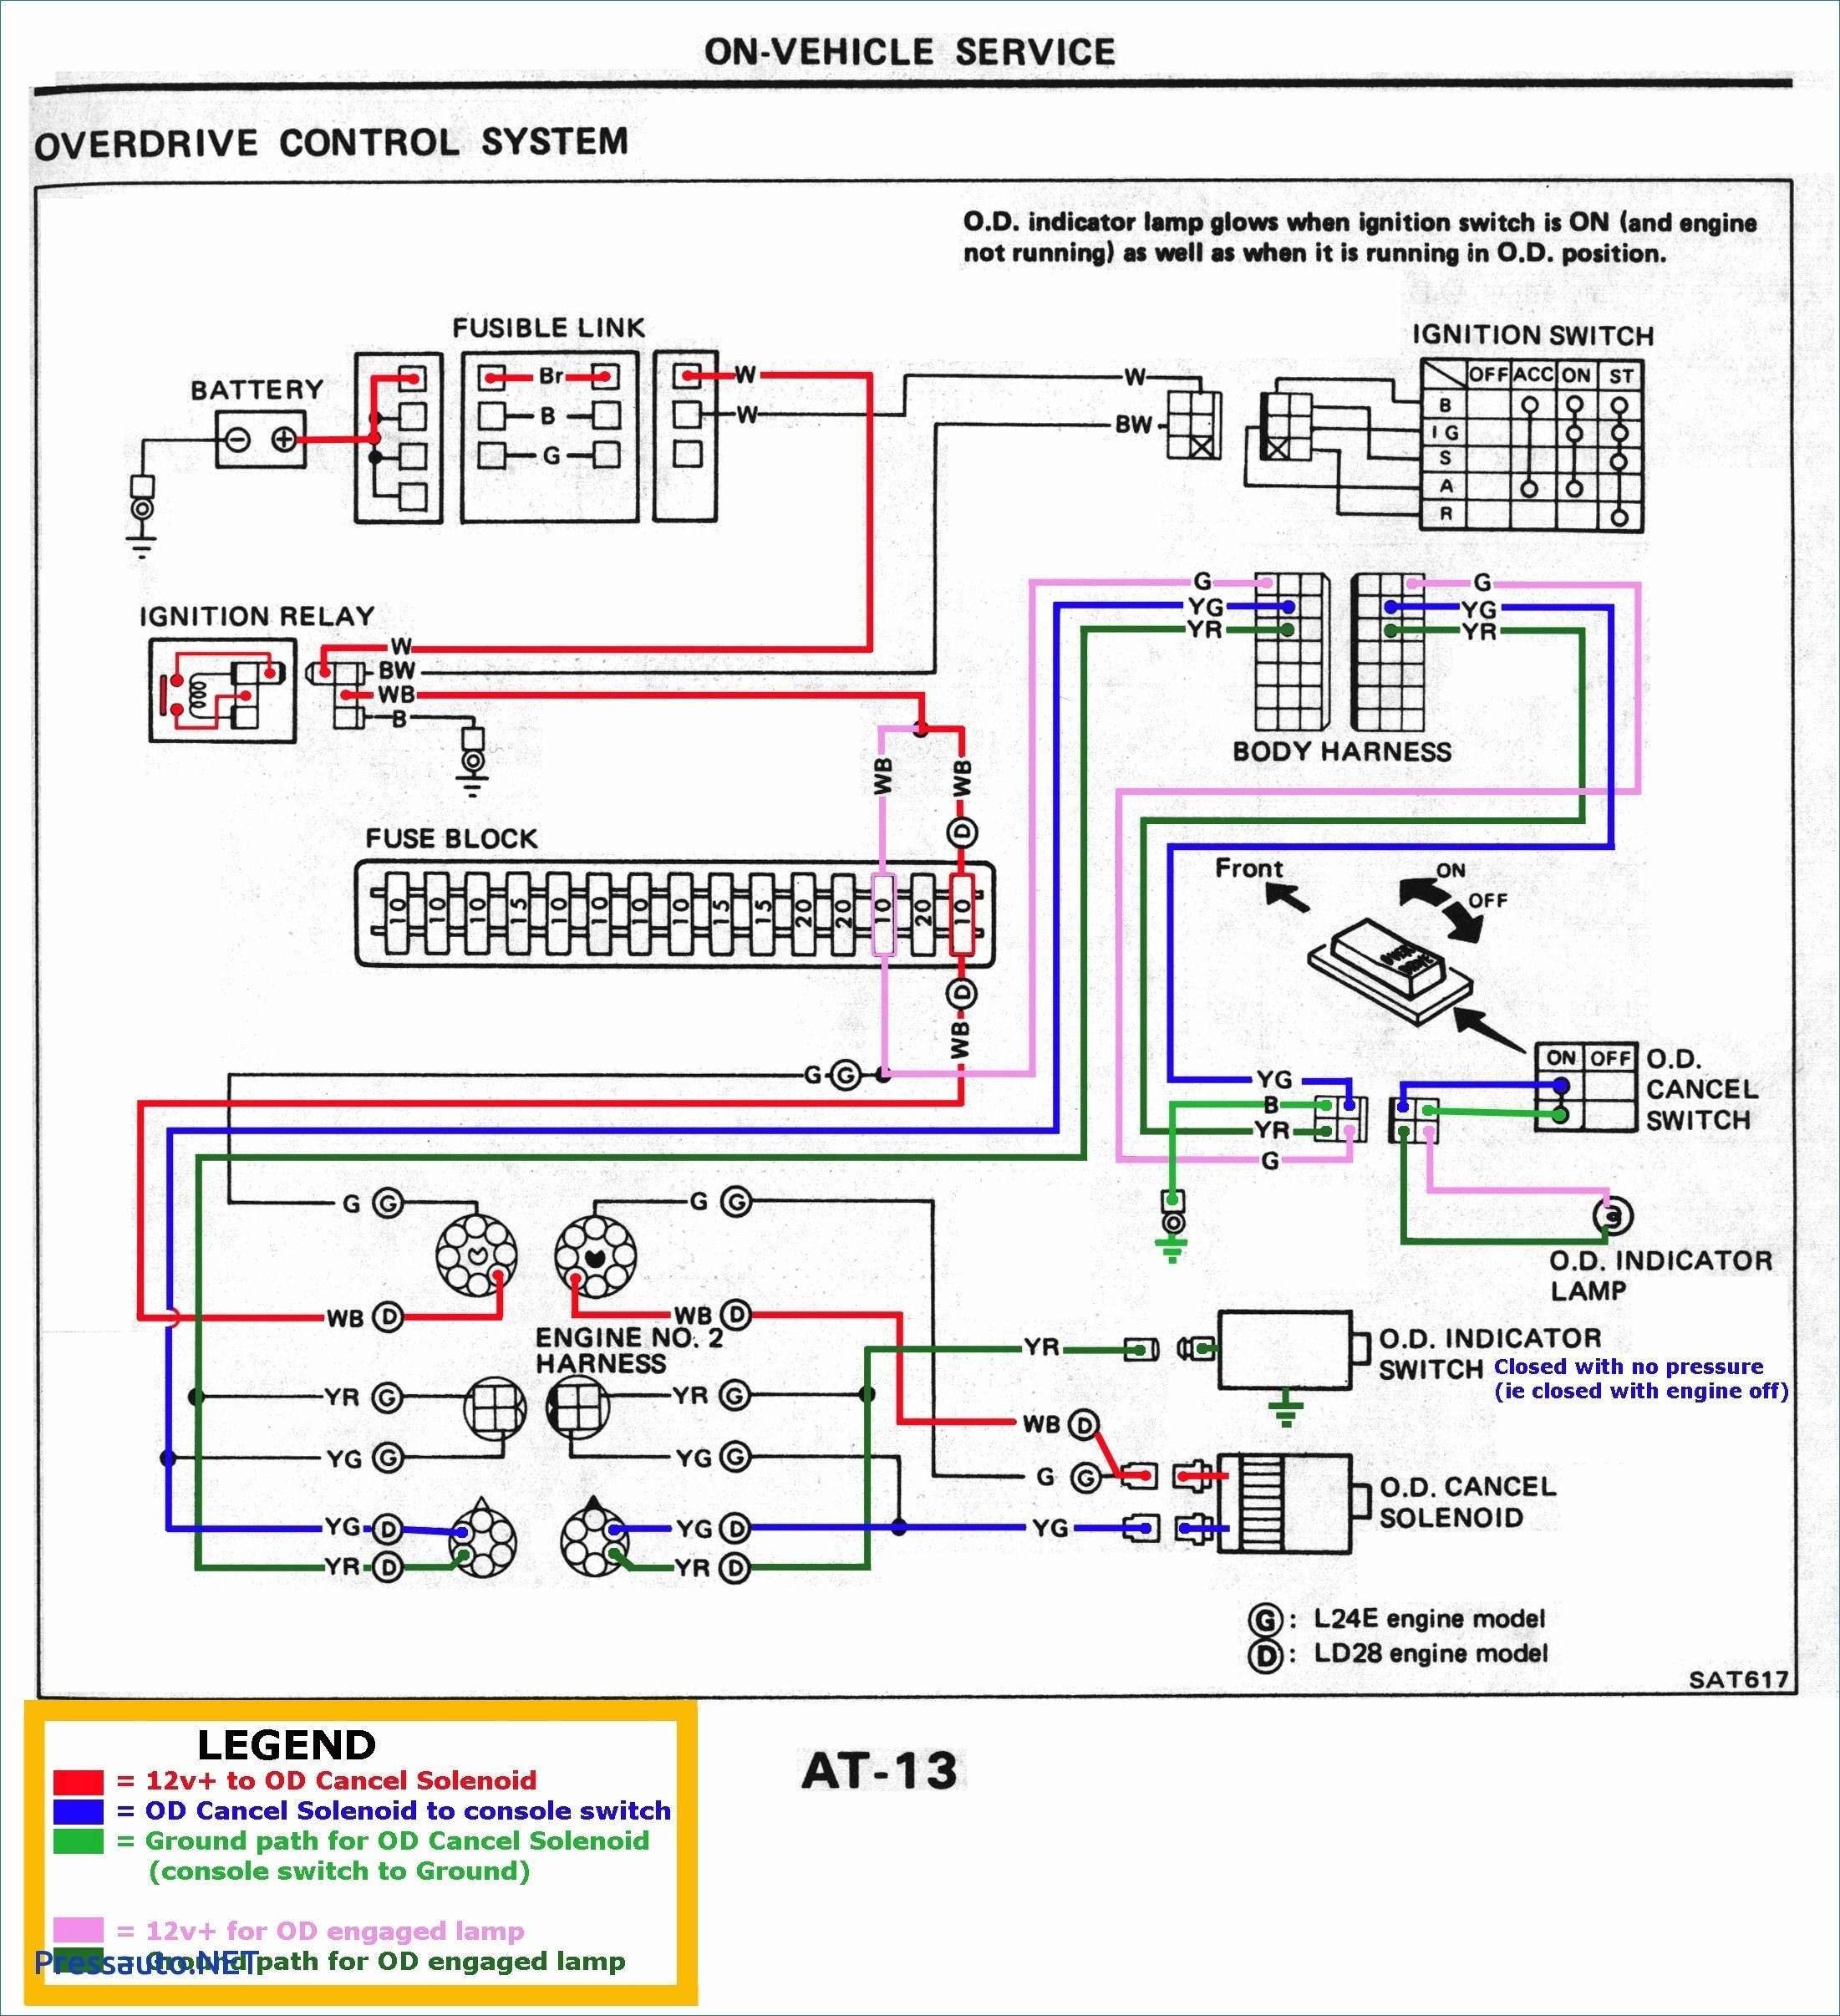 John Deere Ignition Switch Wiring Diagram - Wiring Diagram User on john deere d130 wiring-diagram, john deere 316 flywheel, john deere 316 lights, john deere 316 frame, john deere 318 wiring-diagram, john deere 212 wiring-diagram, john deere 318 onan wiring, john deere 345 kawasaki wiring diagrams, john deere 316 coil, john deere 316 ignition switch, john deere 455 wiring-diagram, john deere 1020 wiring-diagram, john deere 316 electrical, john deere lx255 wiring-diagram, john deere 145 wiring-diagram, john deere 322 wiring-diagram, john deere 155c wiring-diagram, craftsman riding tractor wiring diagram, john deere 4010 wiring-diagram, john deere z225 wiring-diagram,